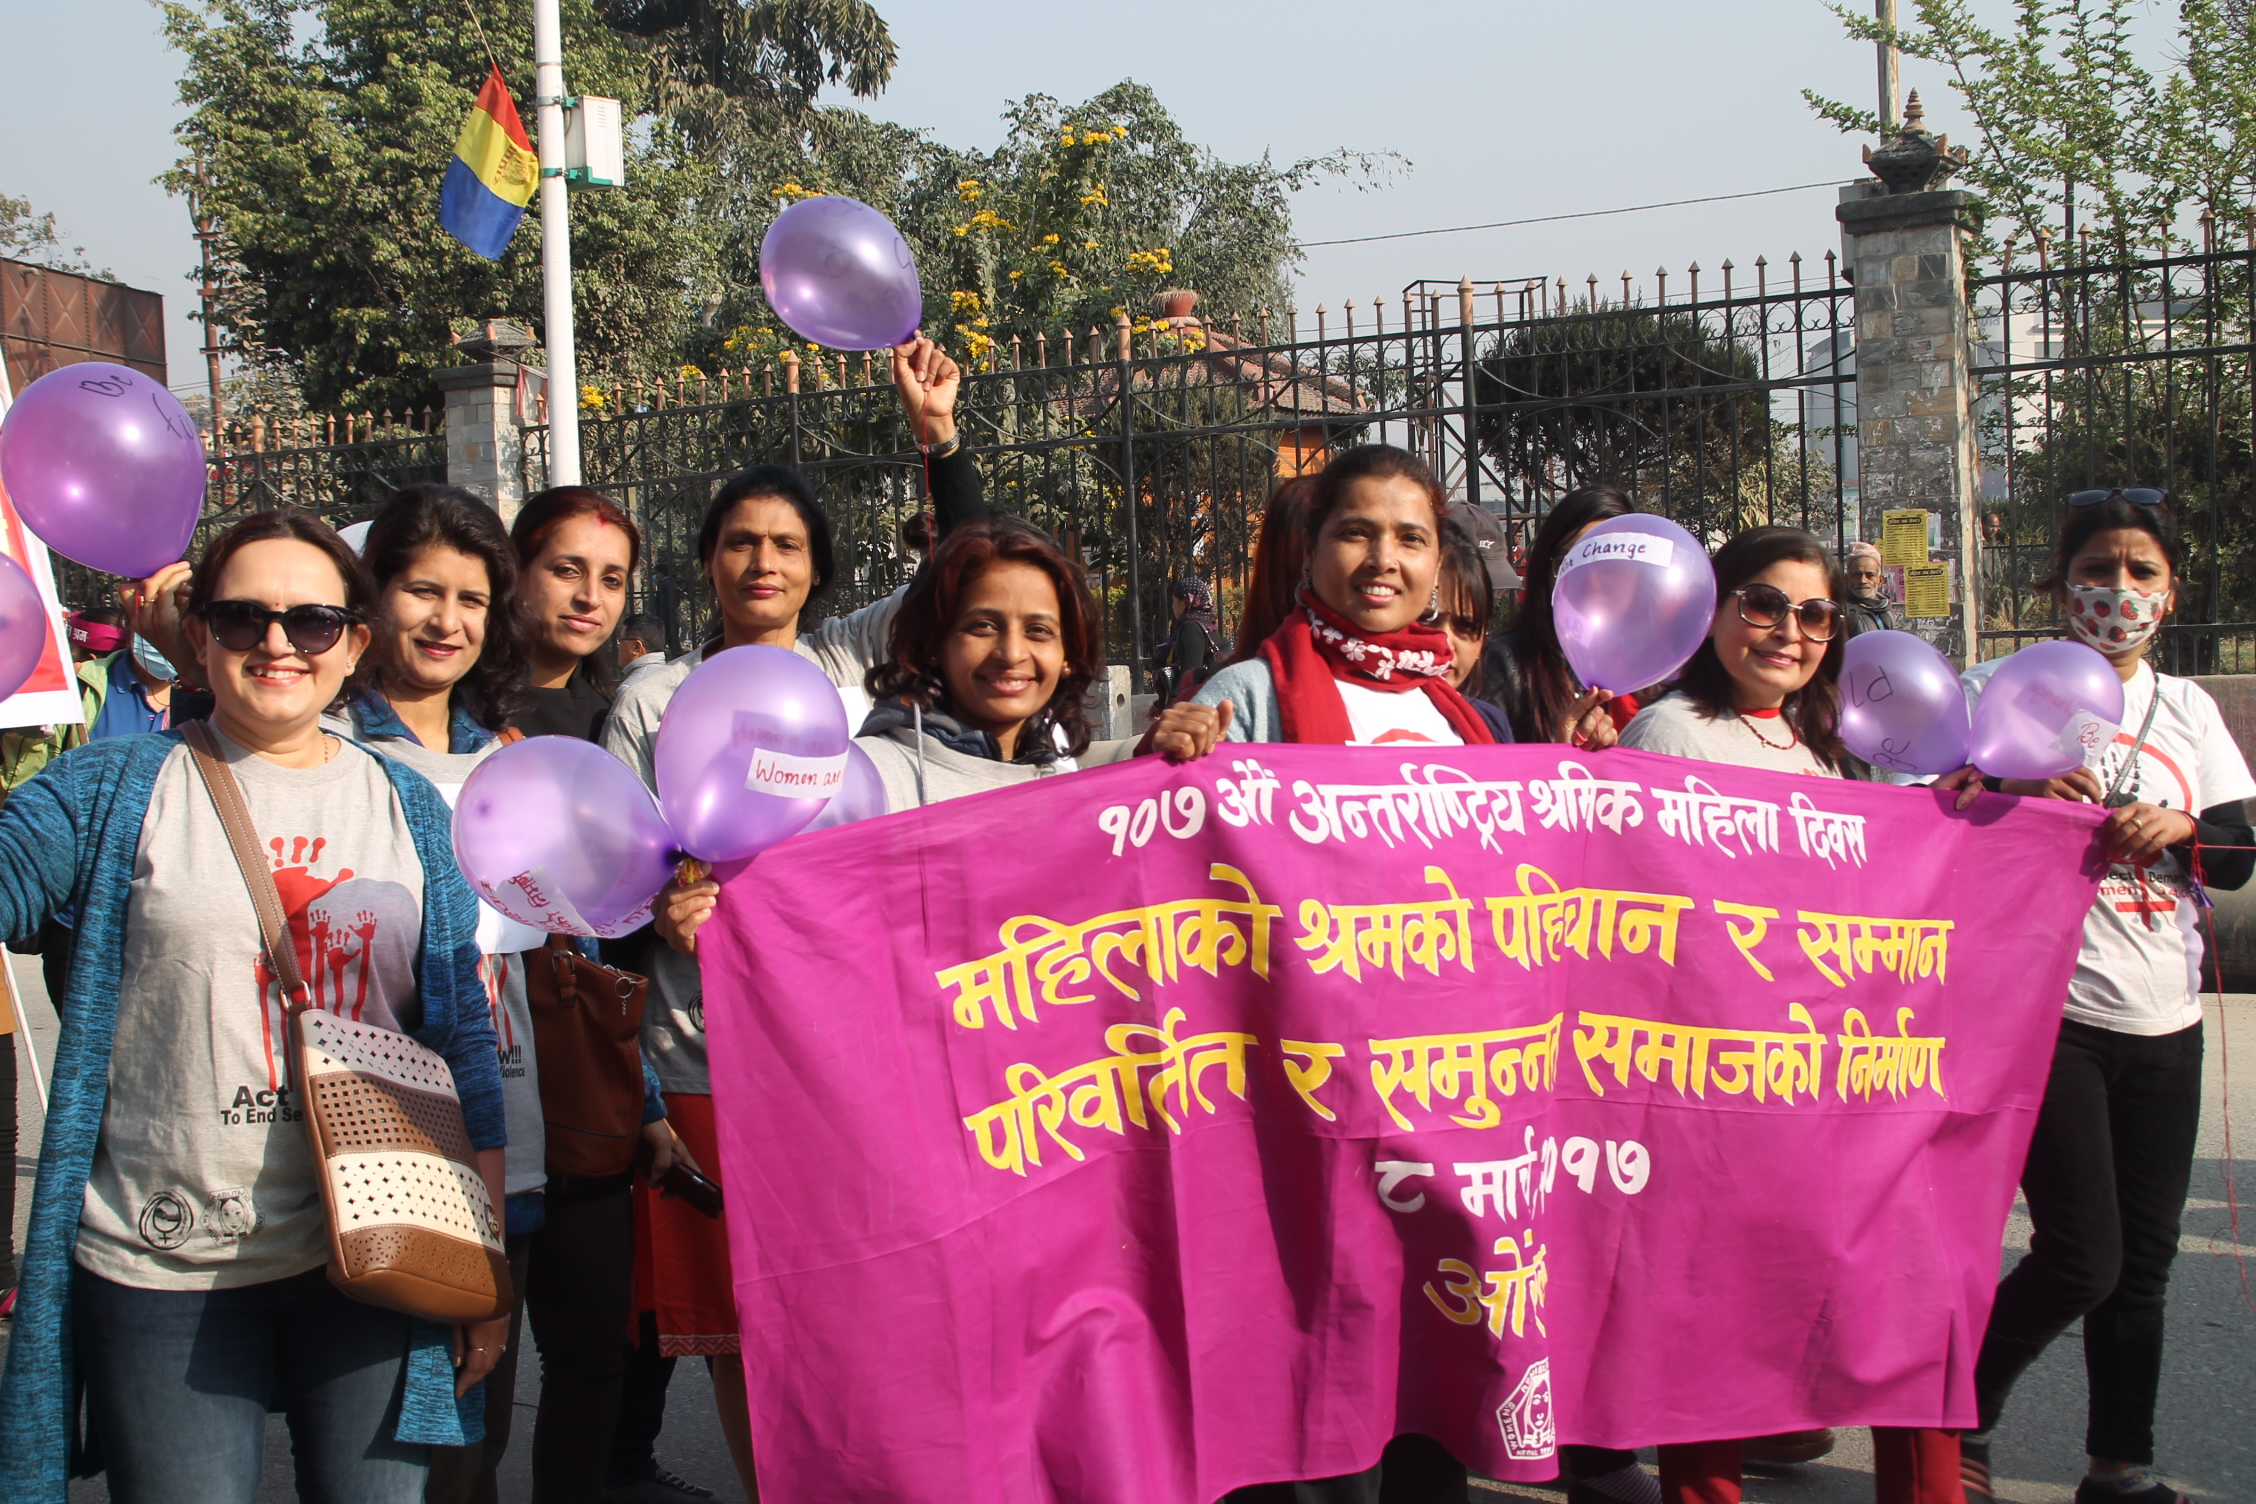 escr net members mobilize for international women s day escr net wlsa was involved in efforts against femicide violence labor exploitation and the subordination of women in arab ngo network for